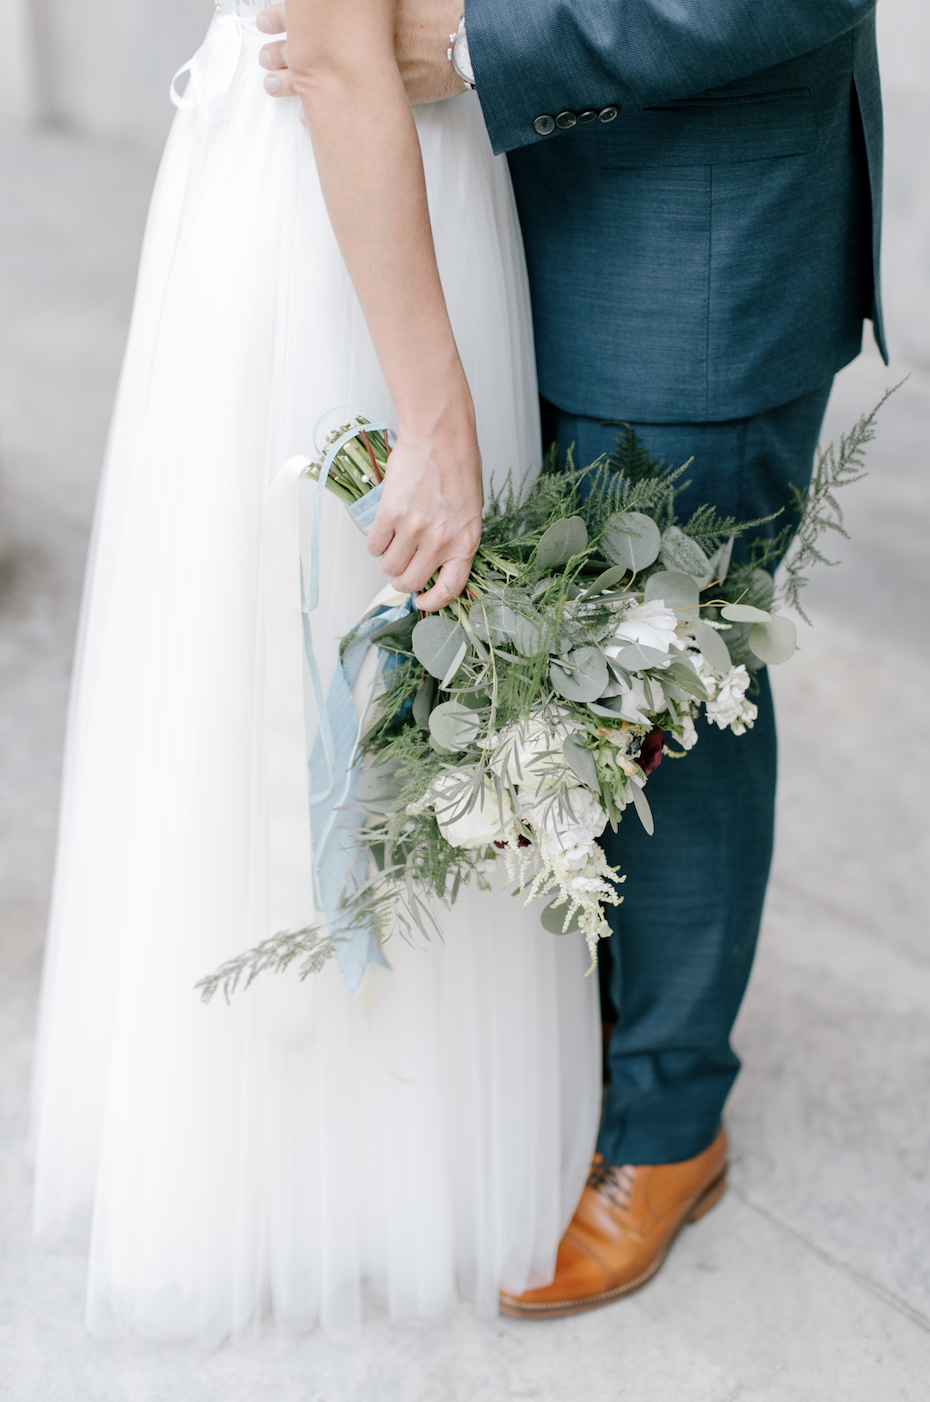 Jen + Billy's Philadelphia Wedding // florals by Devon + Pinkett // photo by Emily Wren Photography